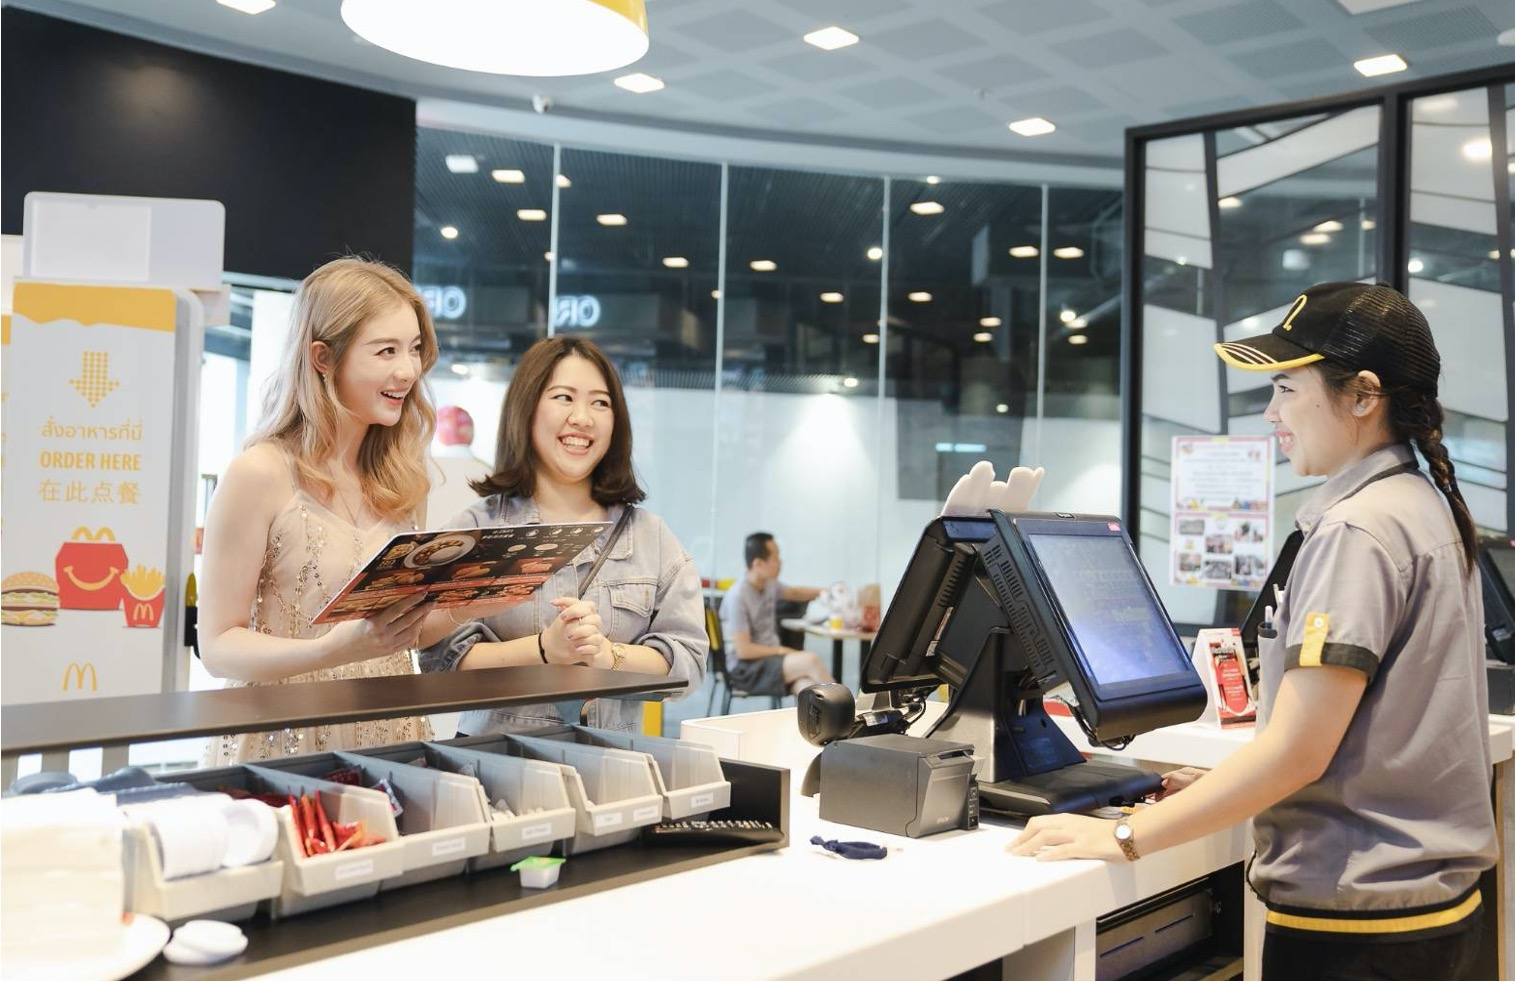 McDonald's Thai KOL Campaign for New Product